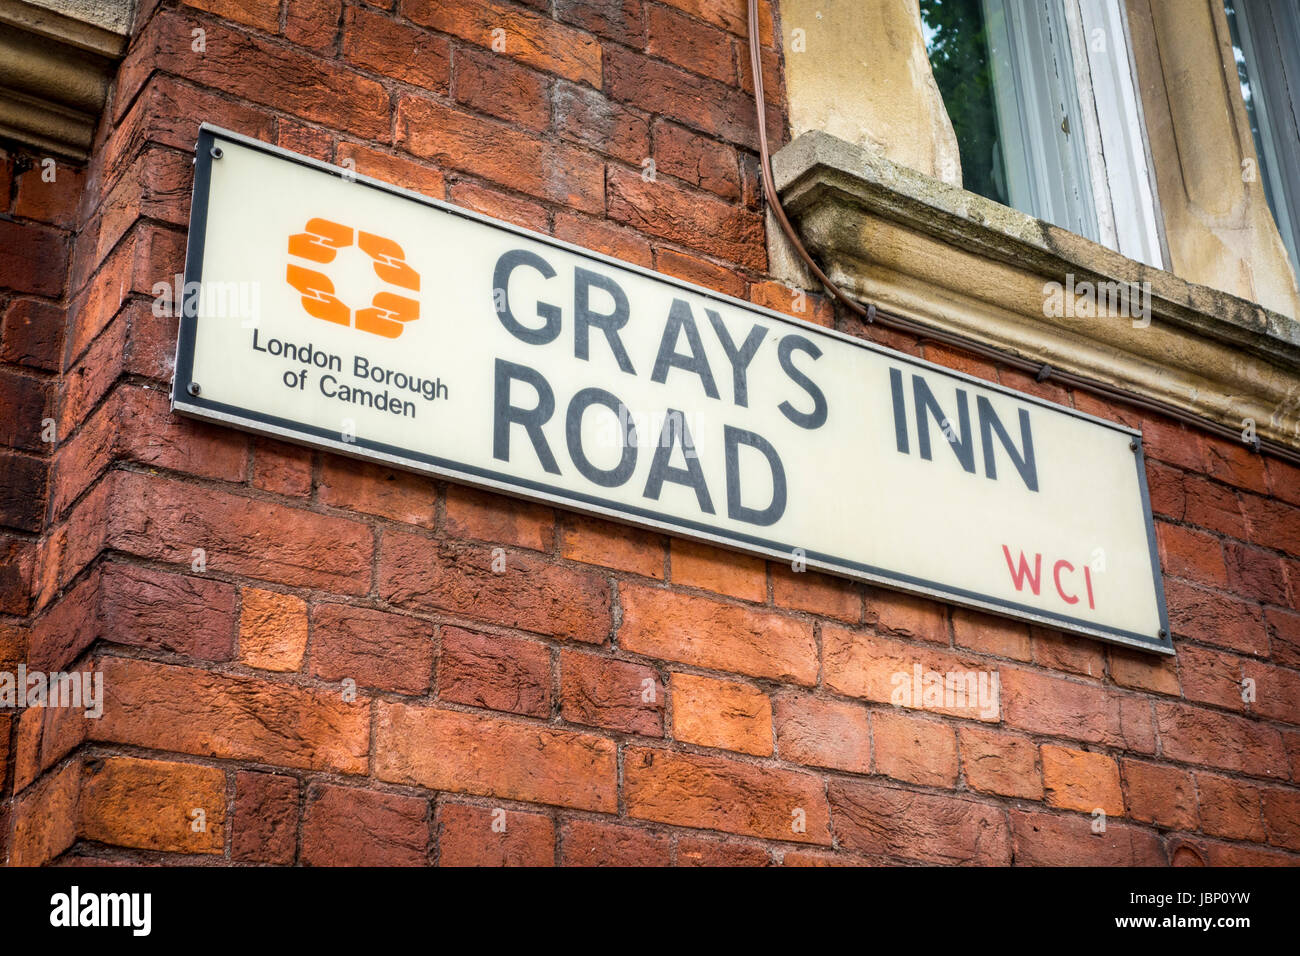 Grays Inn Road street sign on the side of a brick building, London Borough of Camden, London, UK - Stock Image